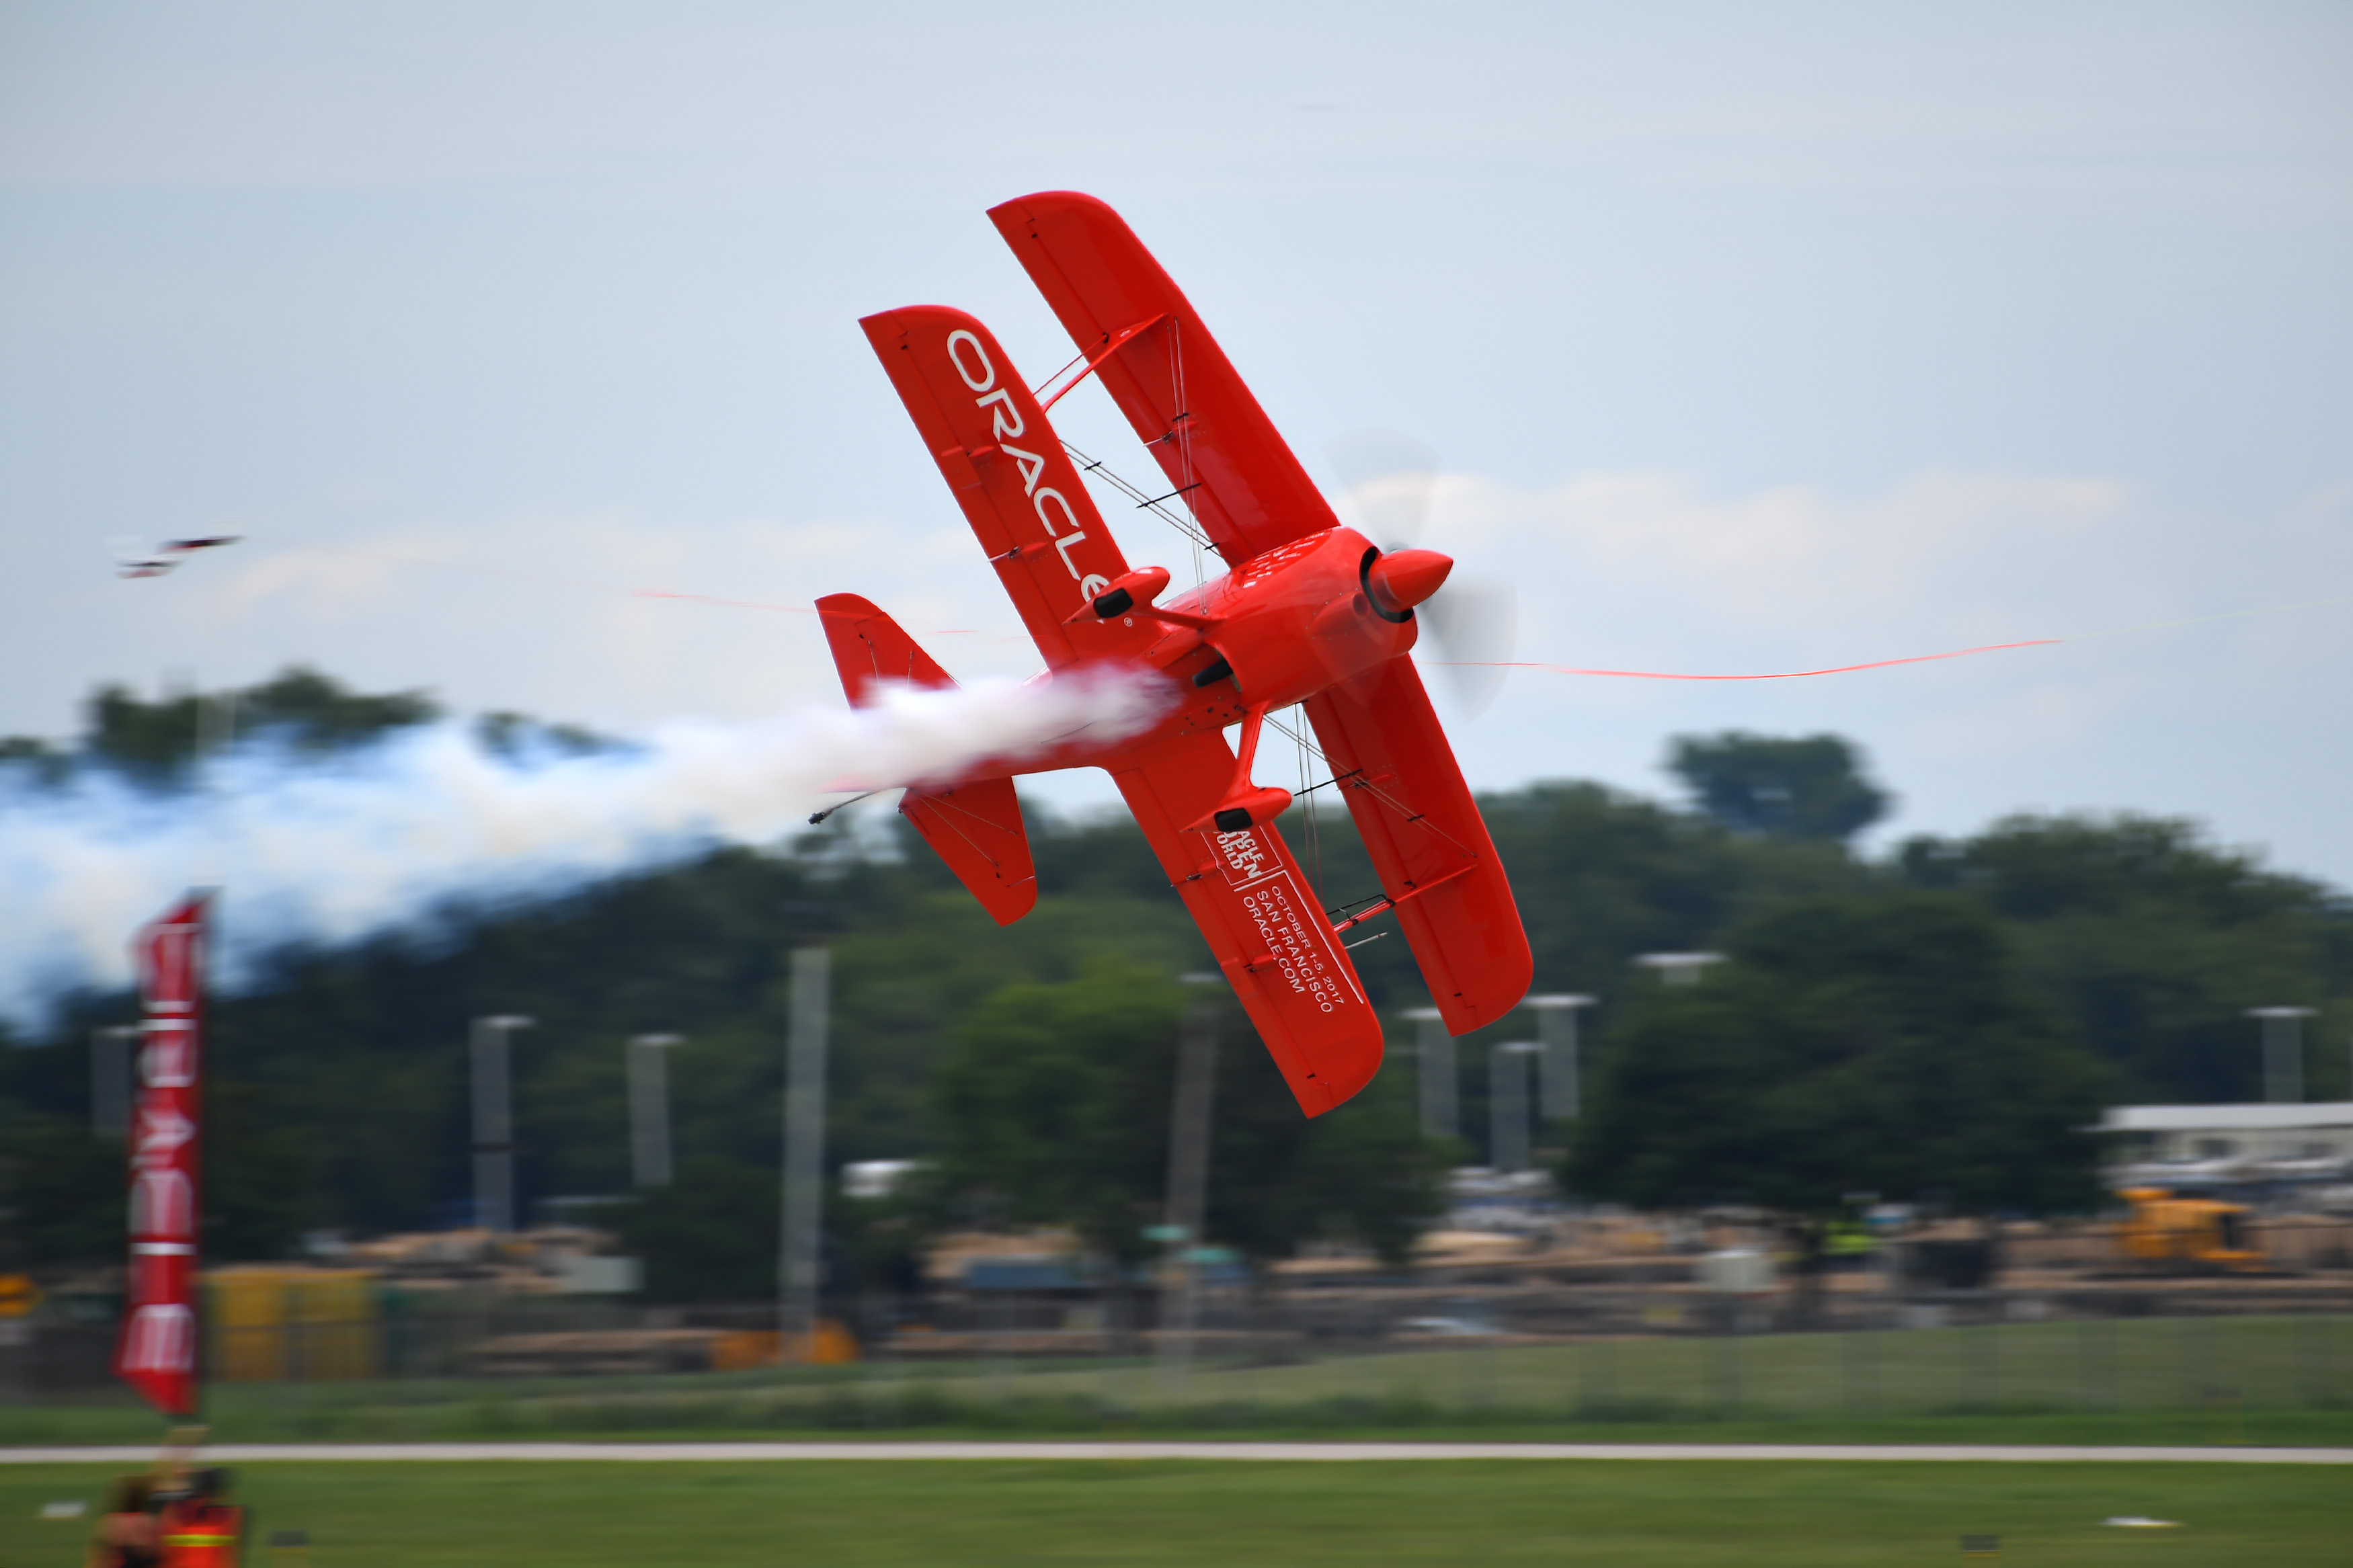 Sean D. Tucker performs his signature triple ribbon cut during EAA AirVenture at Wittman Regional Airport in Oshkosh, Wisconsin. Photo by David Tulis.